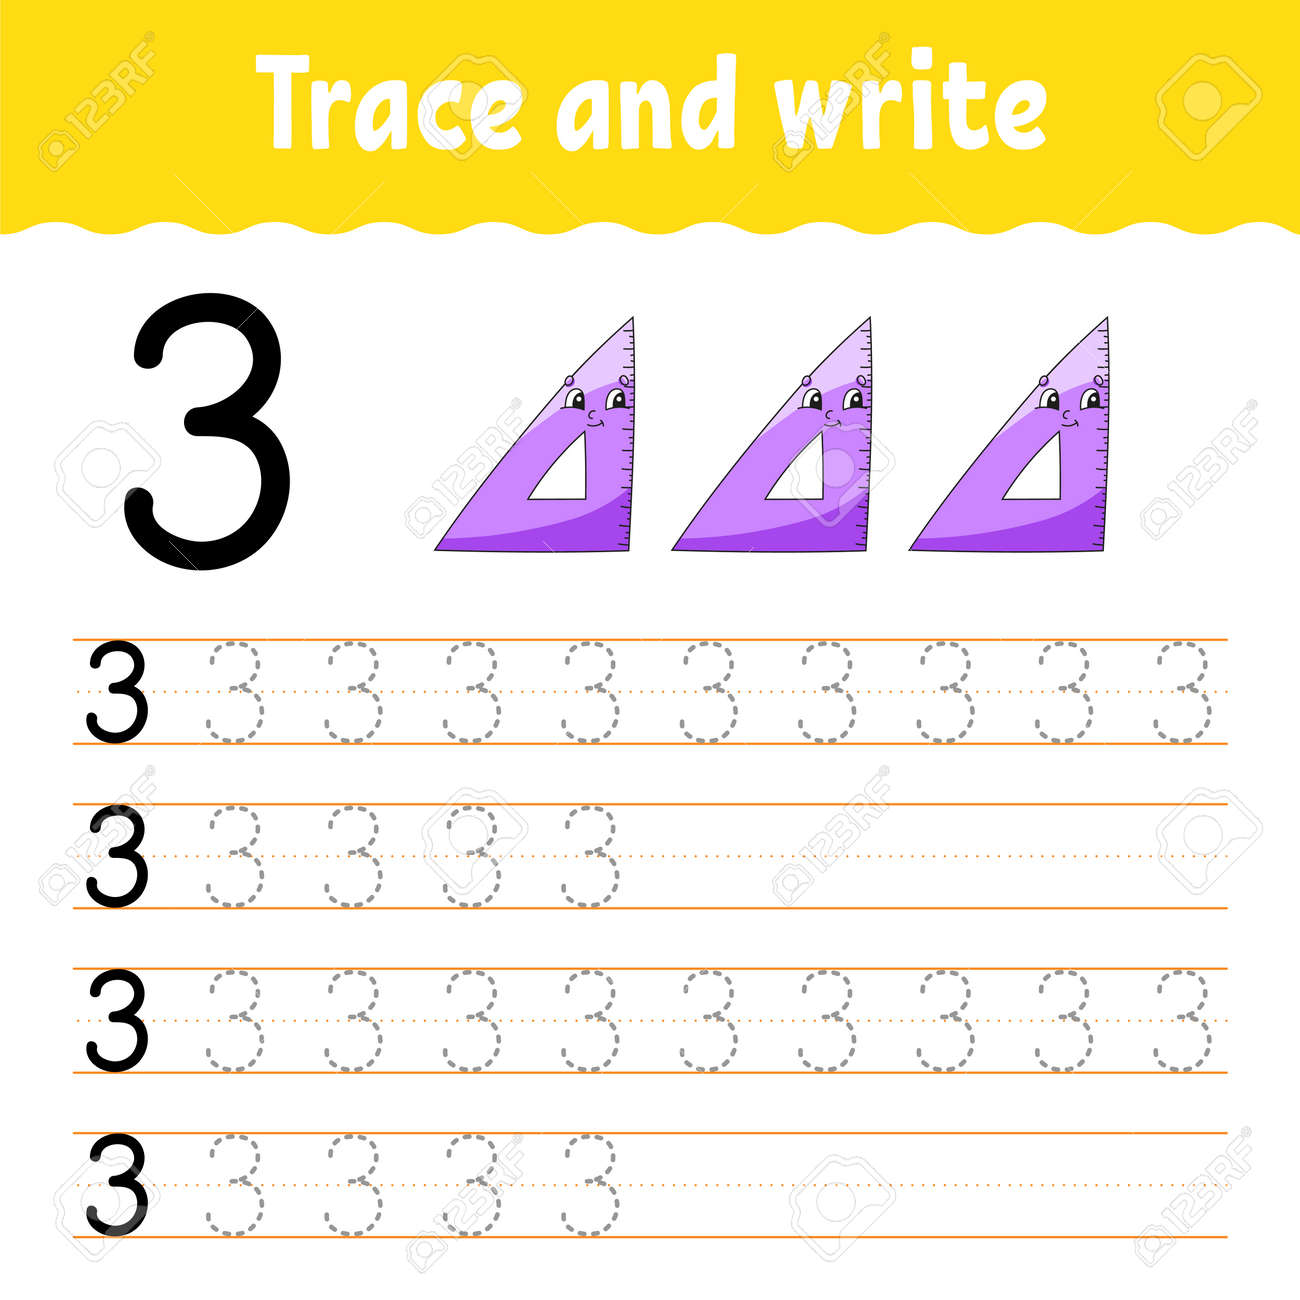 Learn Numbers. Trace and write. Back to school. Handwriting practice. Learning numbers for kids. Education developing worksheet. Isolated vector illustration in cute cartoon style. - 156630365